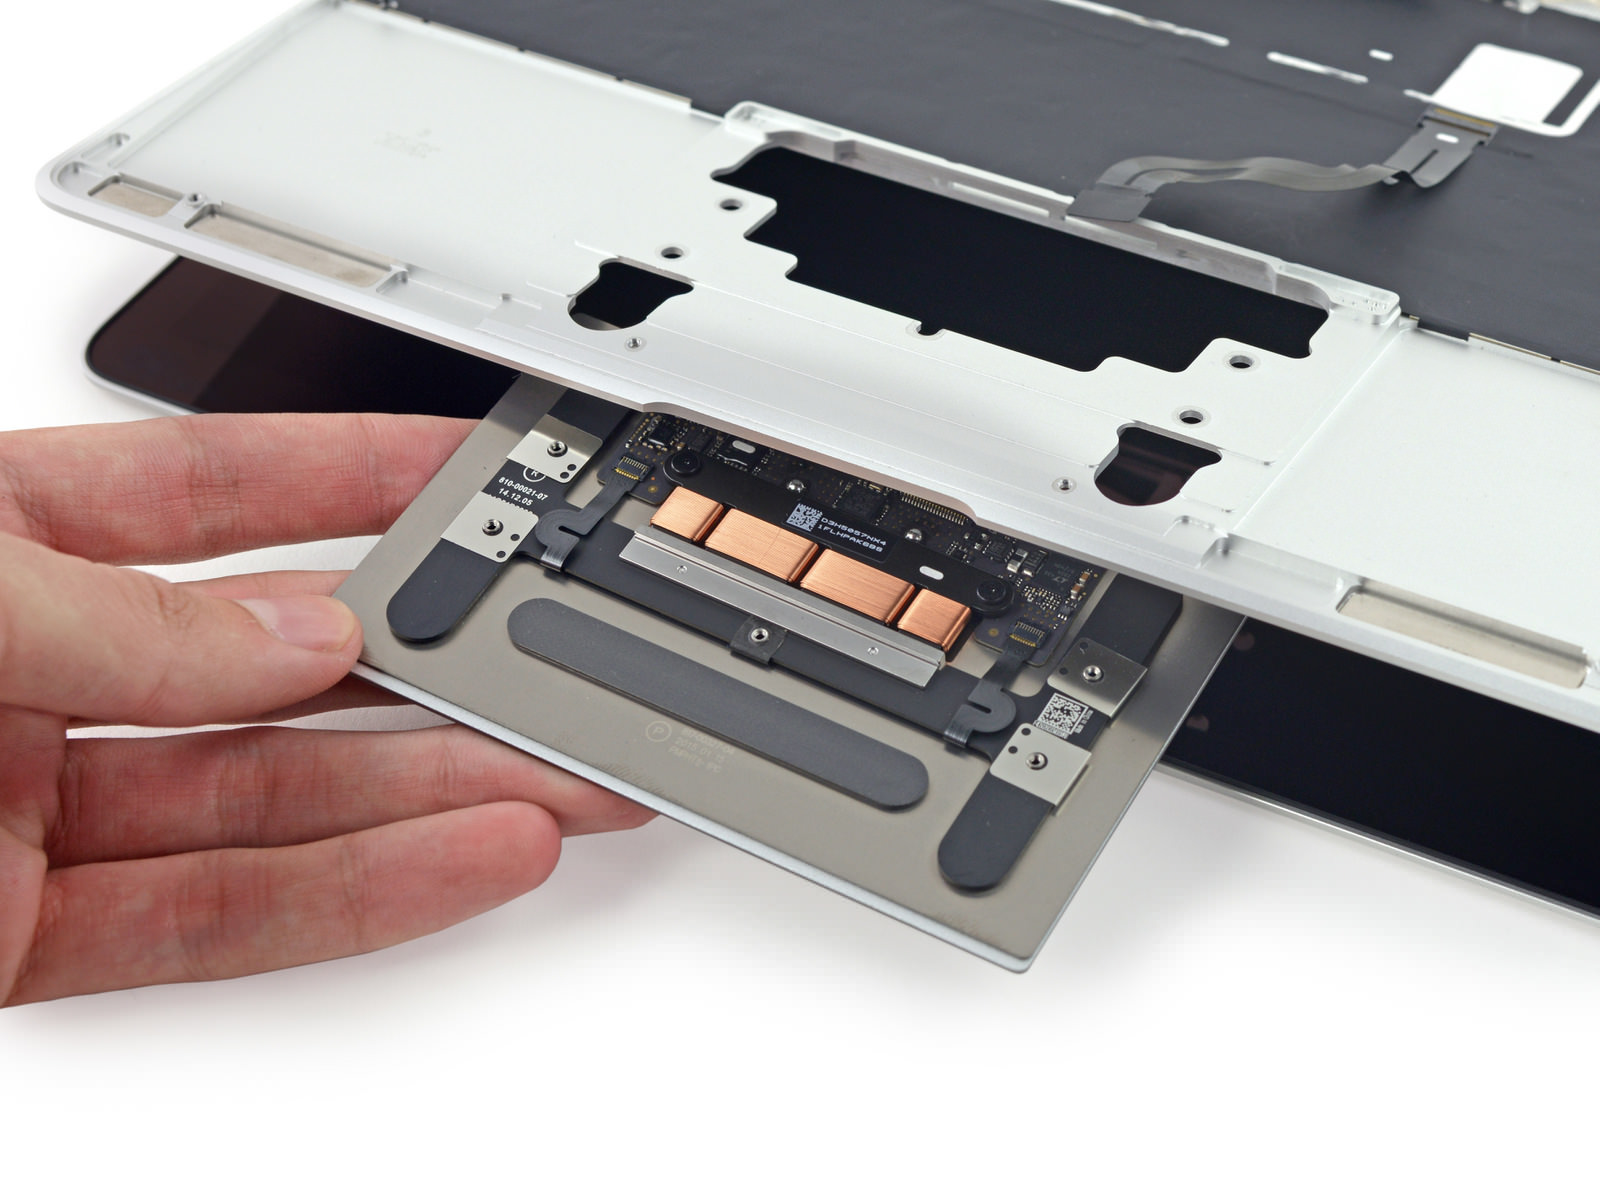 MacBook 2015, quasi impossibile da riparare